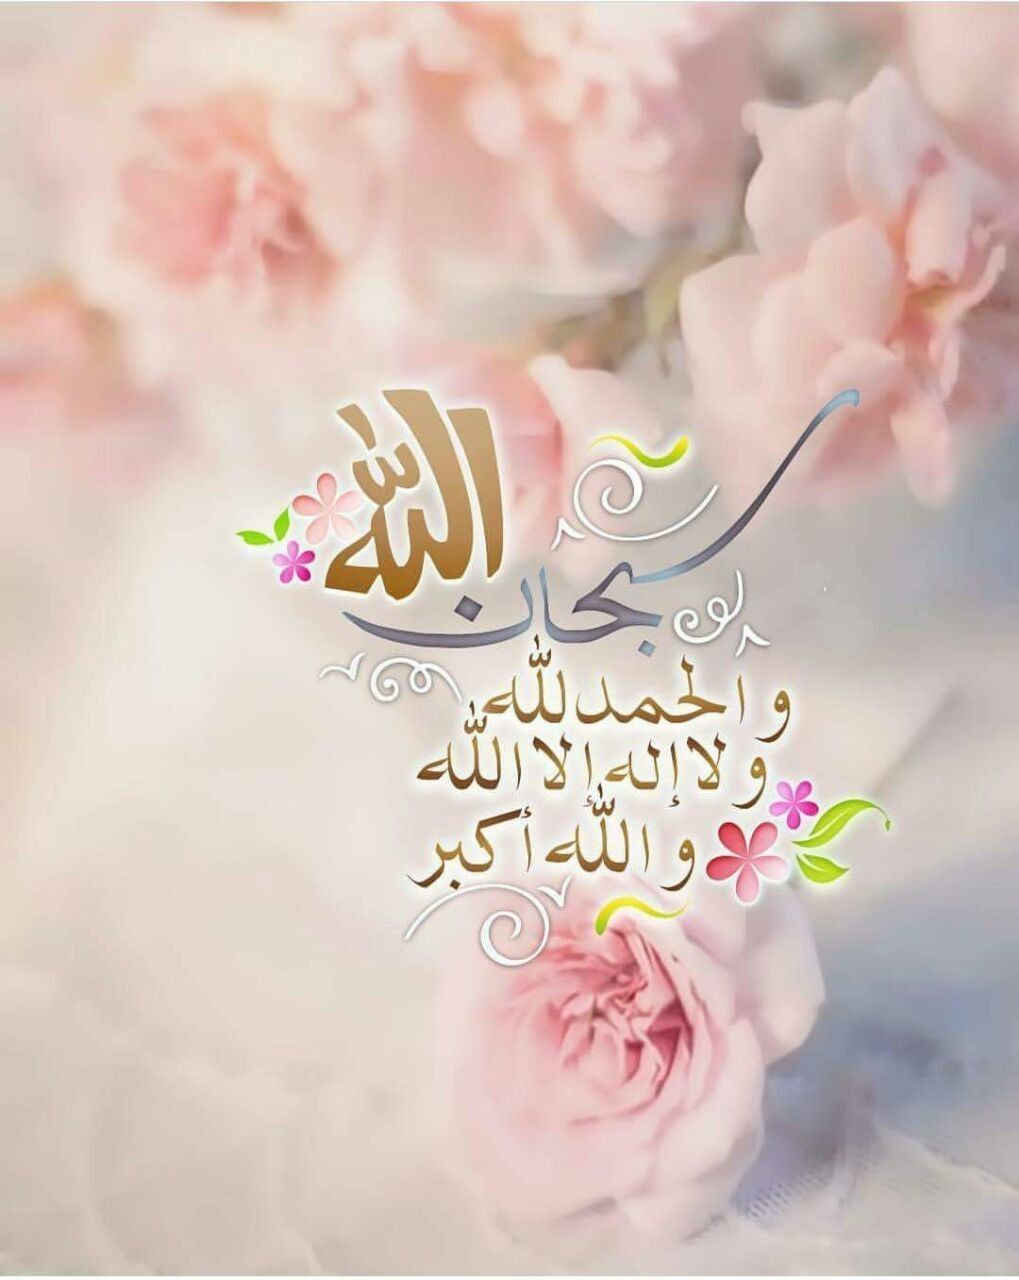 Pin By Marwa Amin On ذكر وتسبيح In 2020 Islamic Images Islamic Pictures Islamic Wallpaper Hd